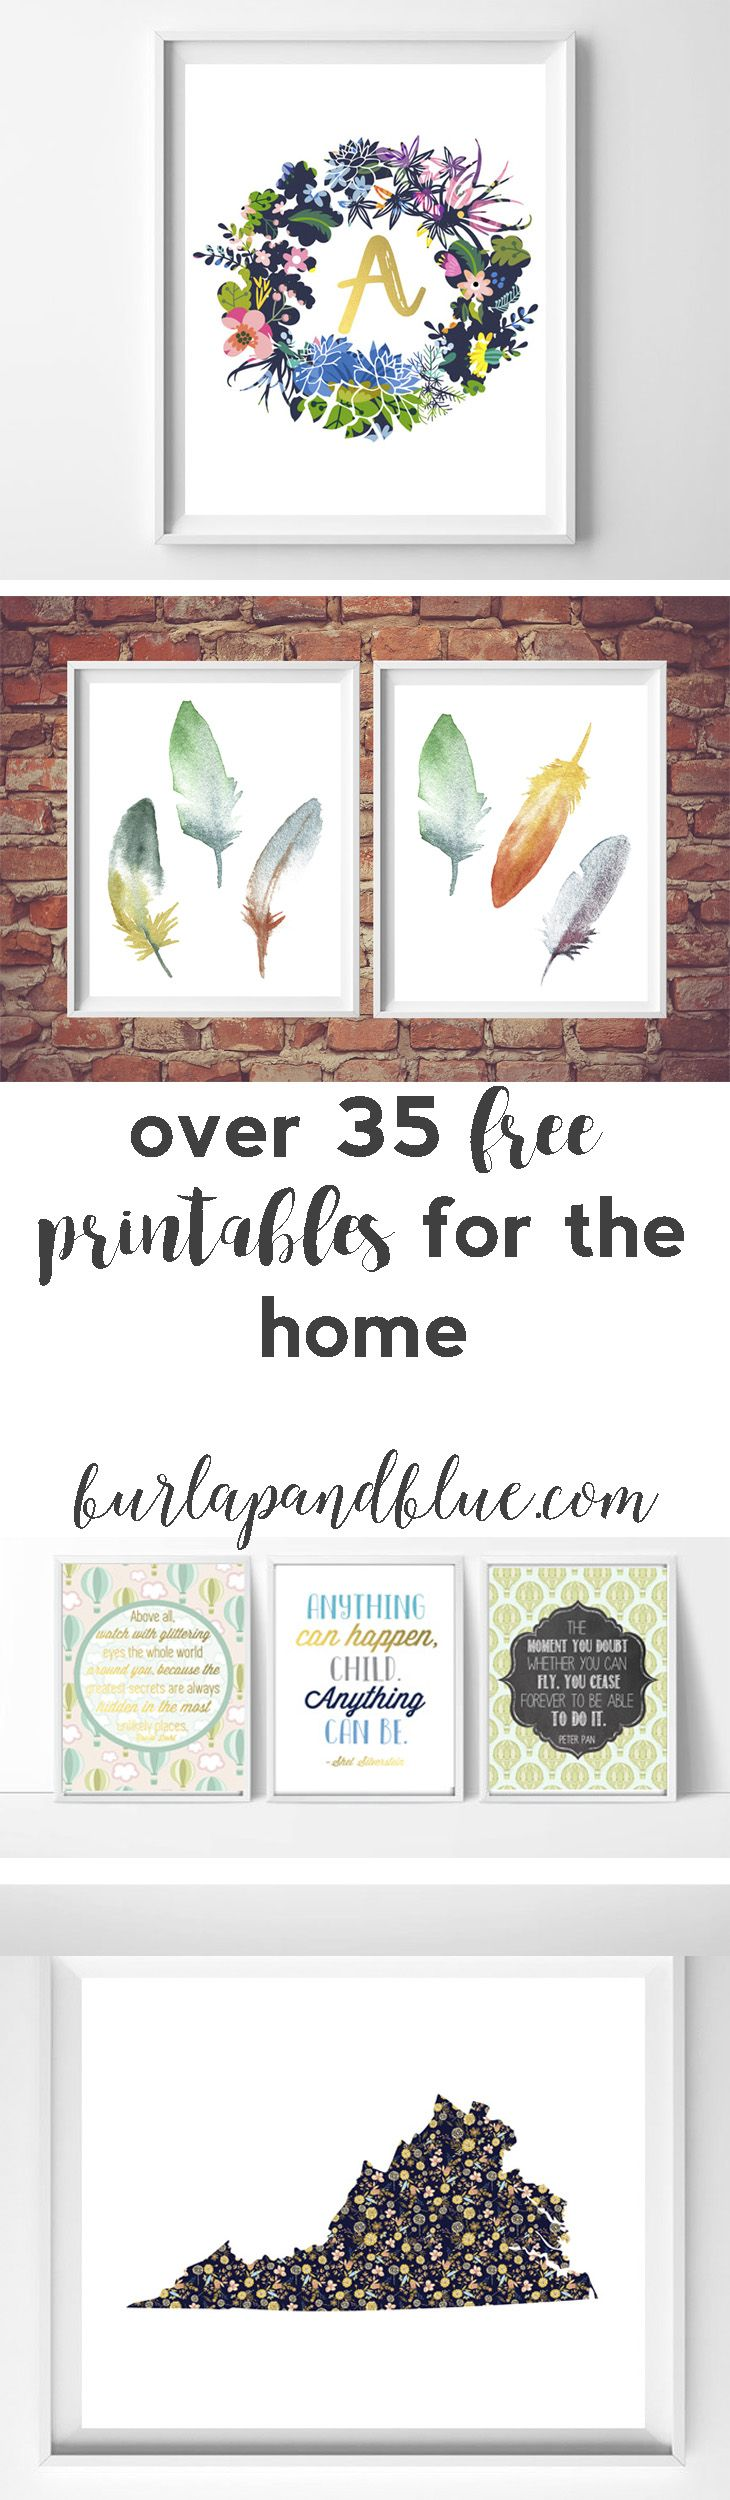 free printables for the home over 50 printable favorites - Free Home Decorating Ideas Photos